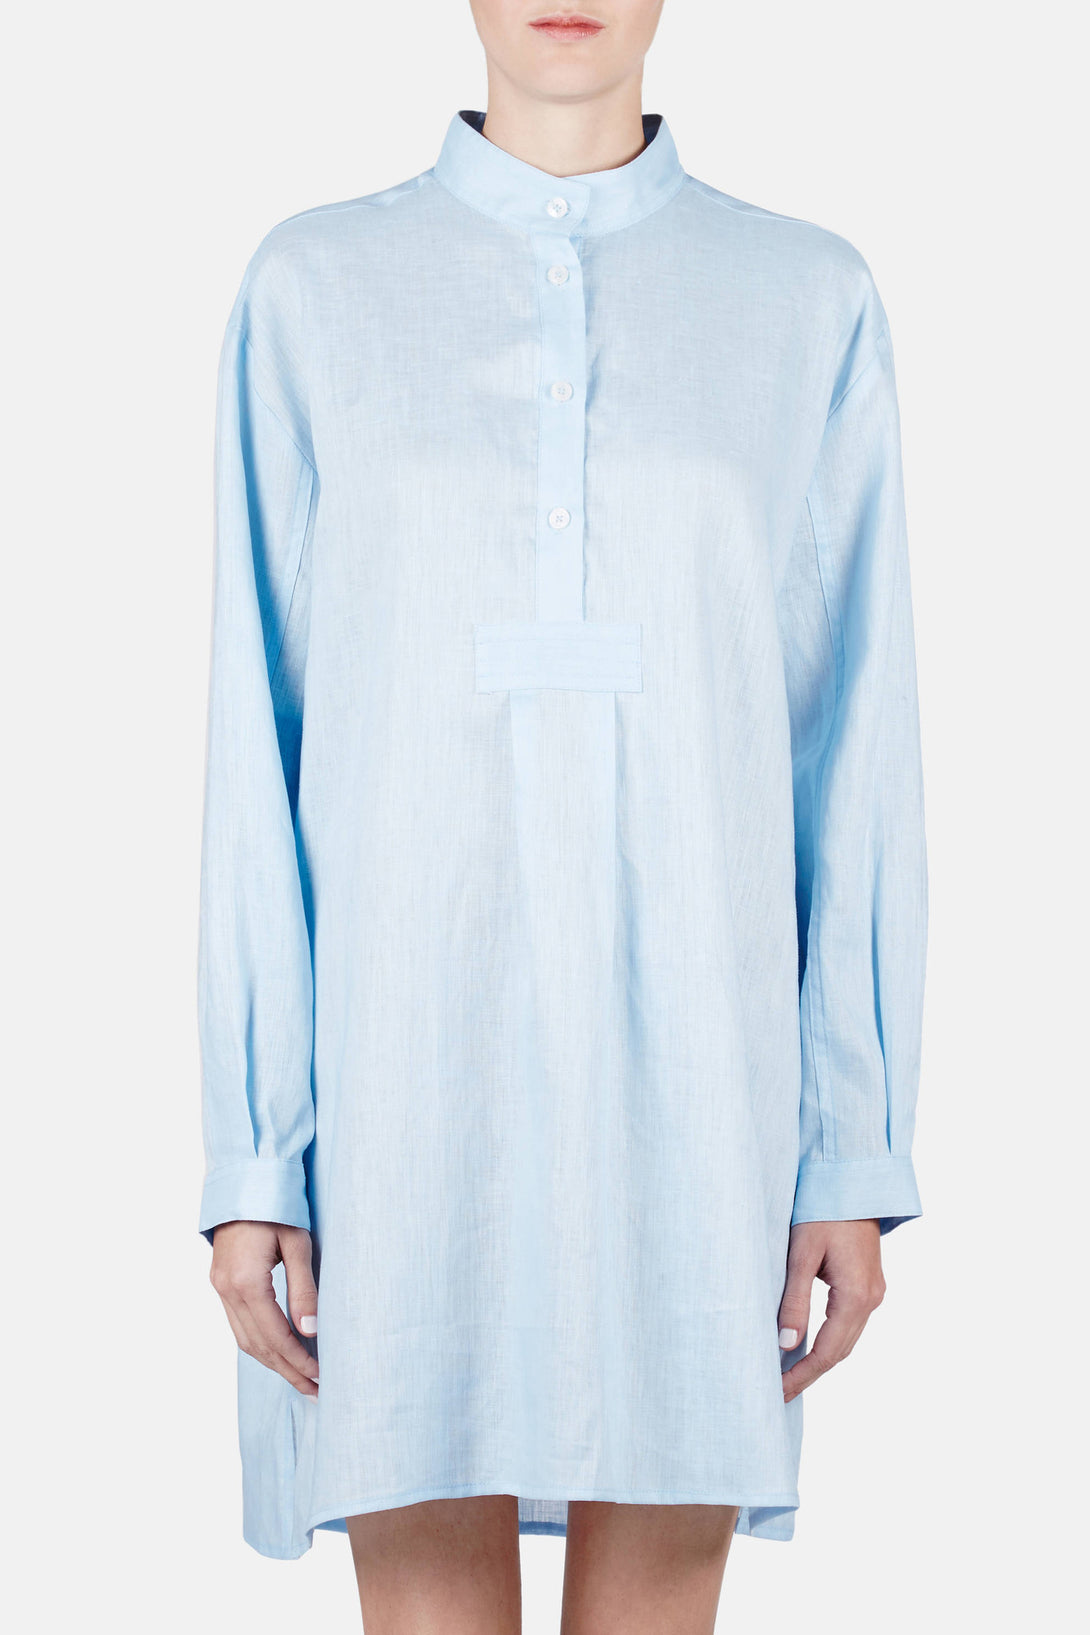 Short Sleep Shirt - Spa Blue